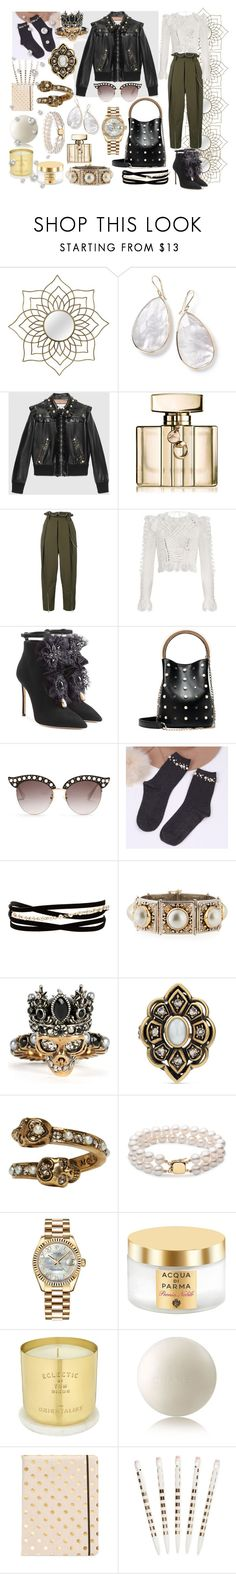 """""""String of Pearls"""" by p0llyinurpocket ❤ liked on Polyvore featuring Ippolita, Gucci, Alexander Wang, Zimmermann, Dsquared2, Kenneth Jay Lane, Konstantino, Alexander McQueen, Rolex and Acqua di Parma"""